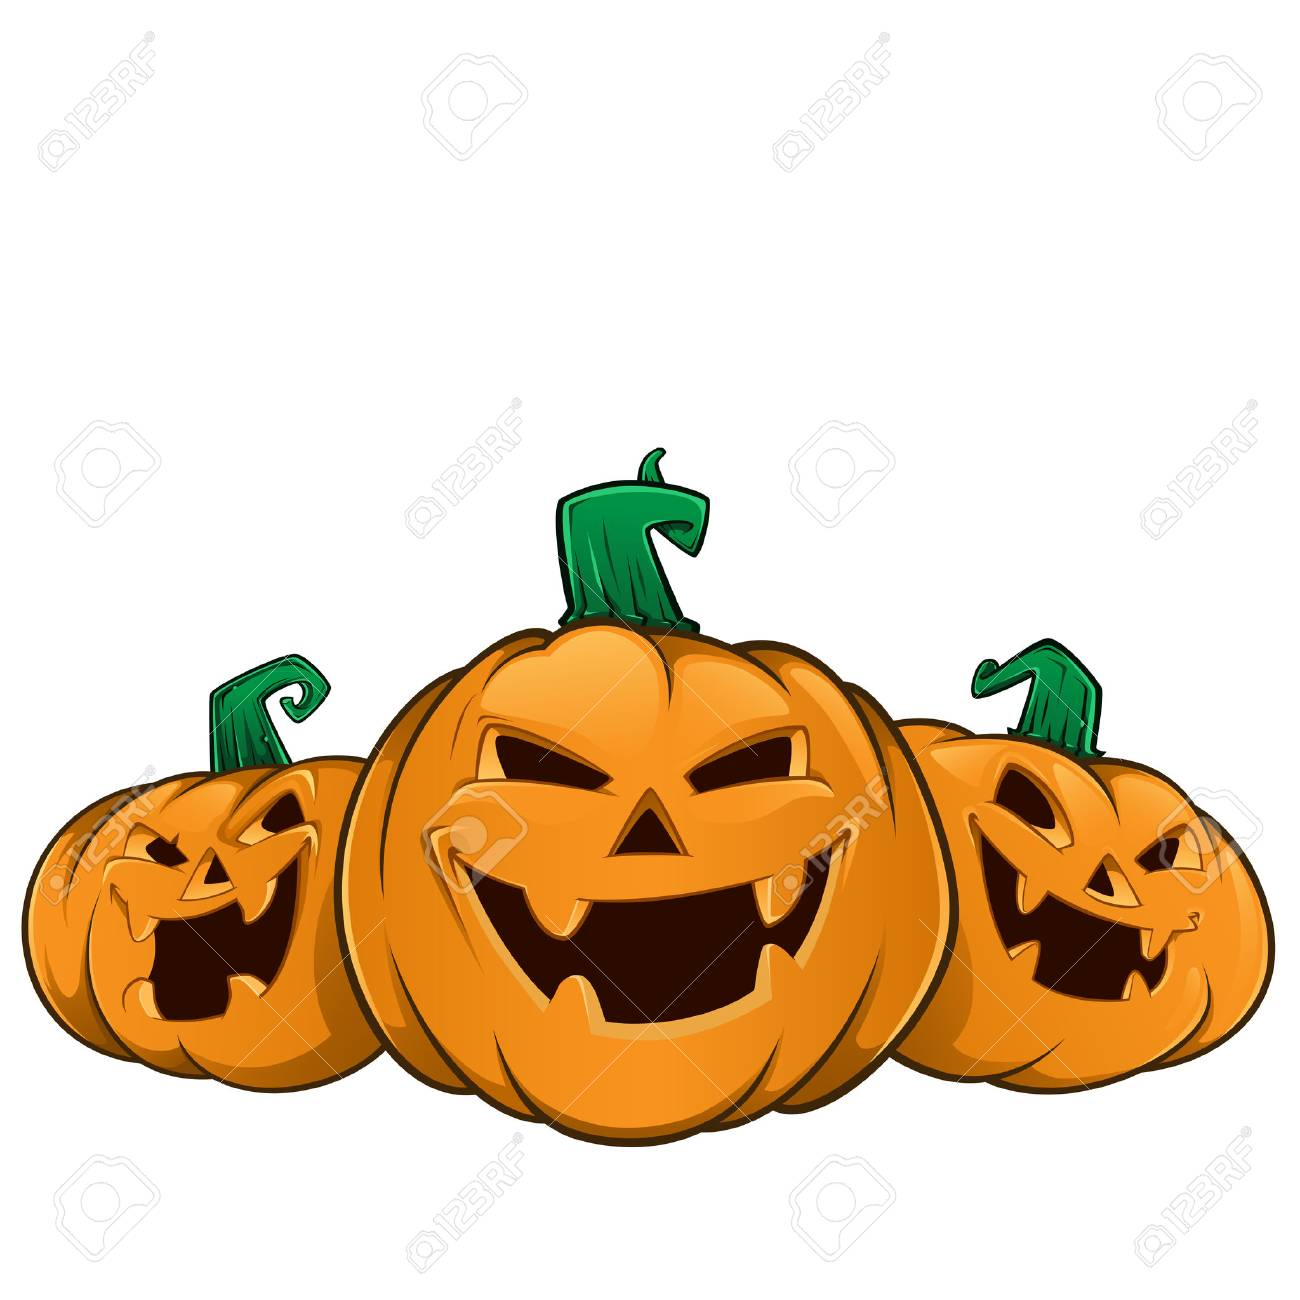 Three pumpkins with evil faces, these are used for Halloween - 45067268